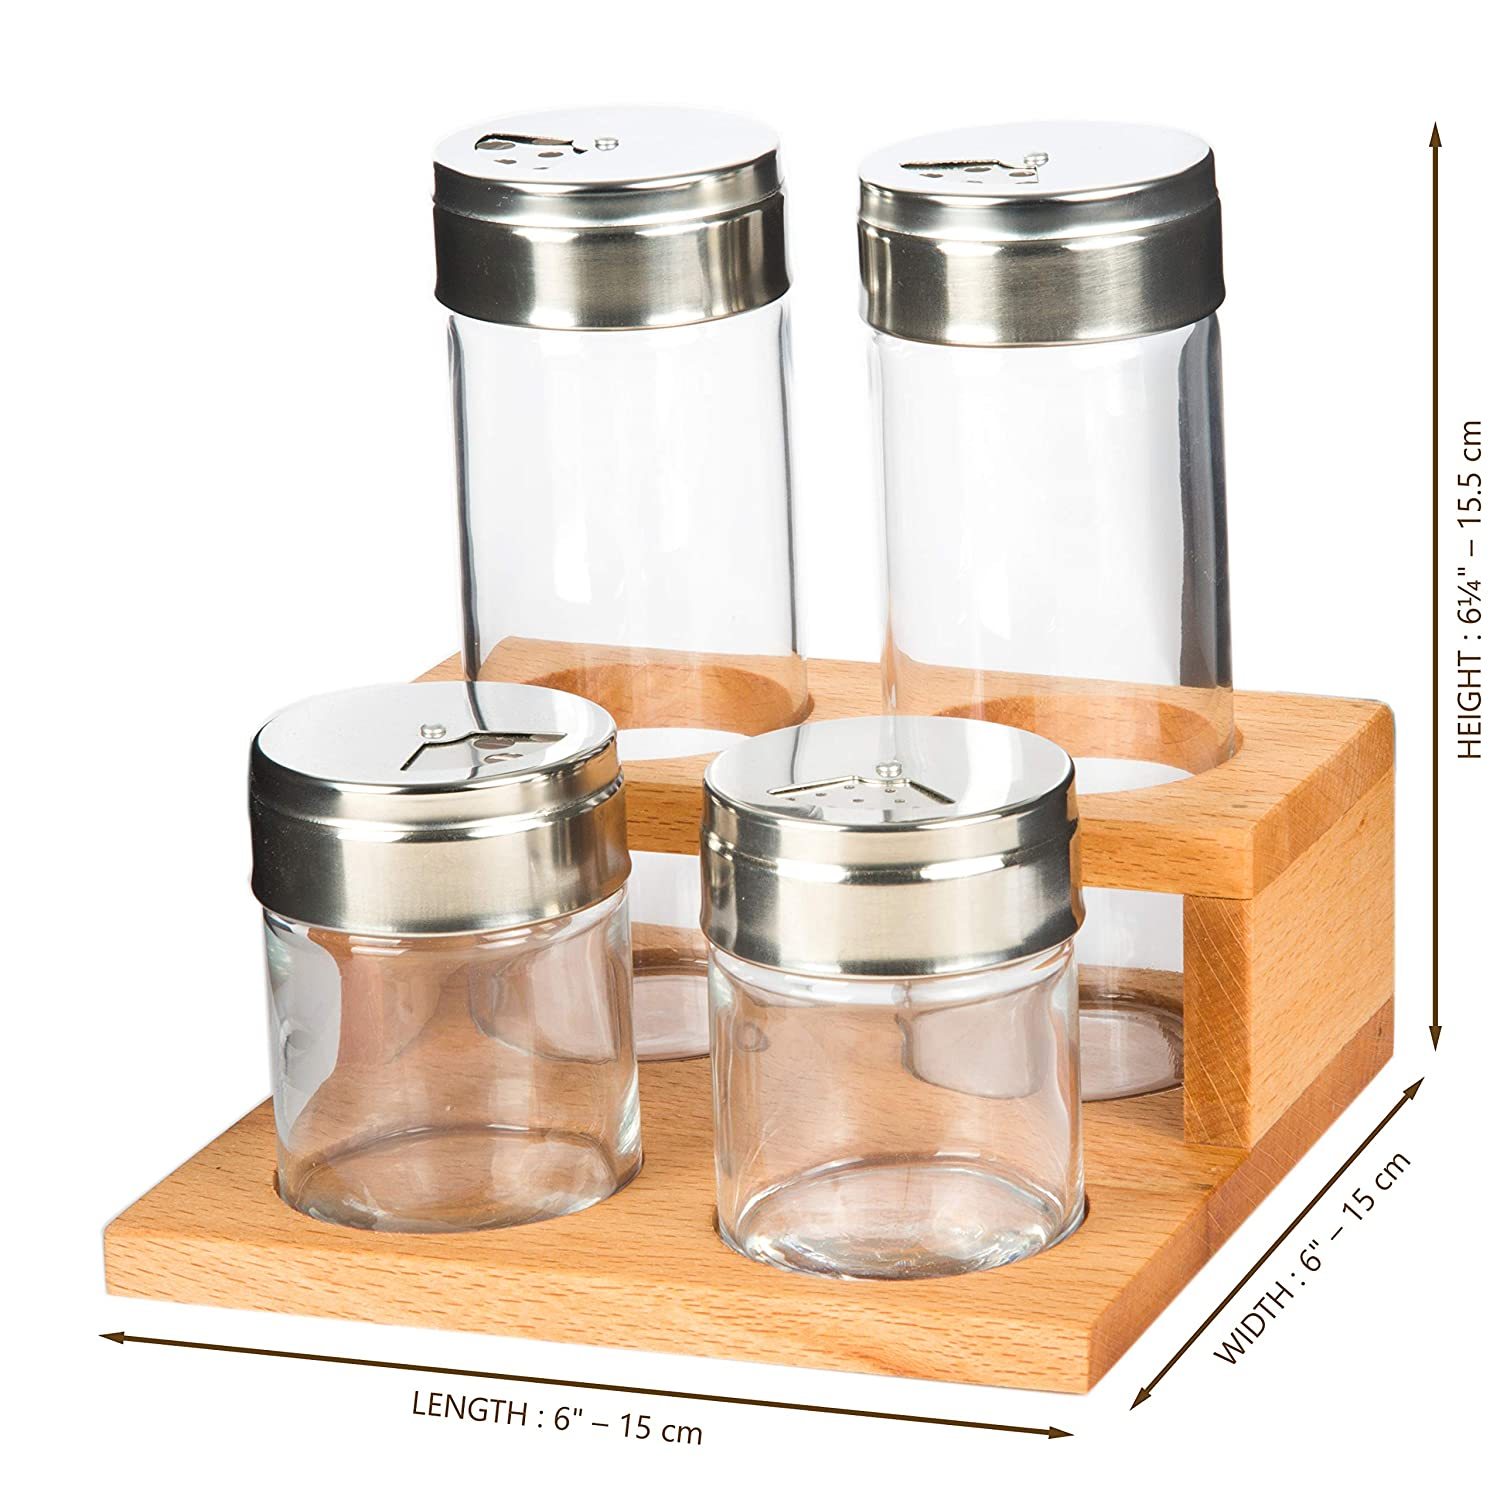 Set of 6 Herb Dispanser Home The Mammoth Design Kitchen Table Countertop Utensil 6 Glass Jars with Metal Lids Professional Wooden Spice Organizer